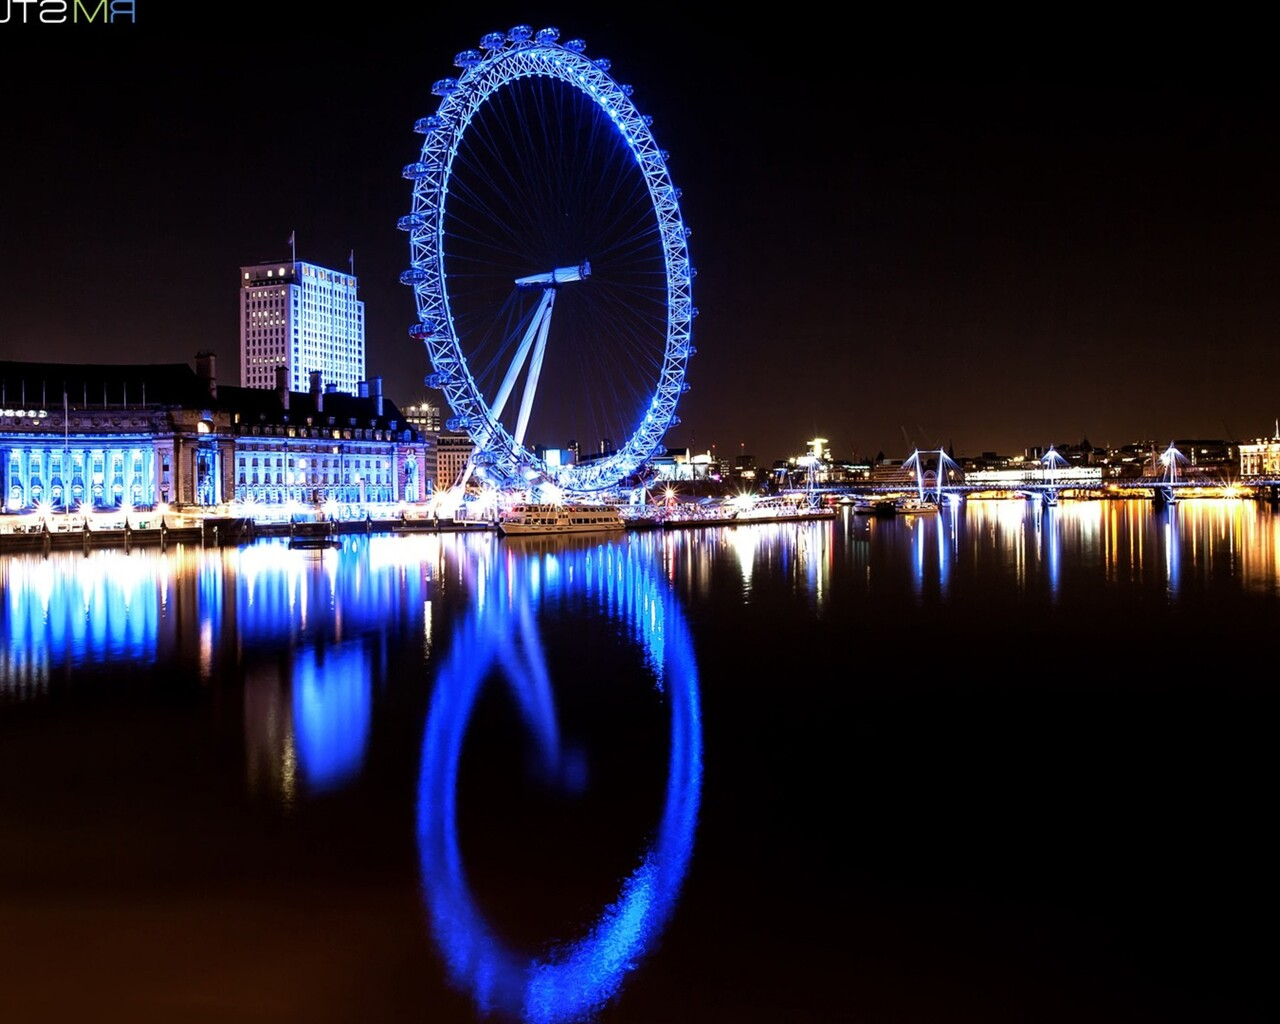 1280x1024 london eye river thames 1280x1024 resolution hd 4k